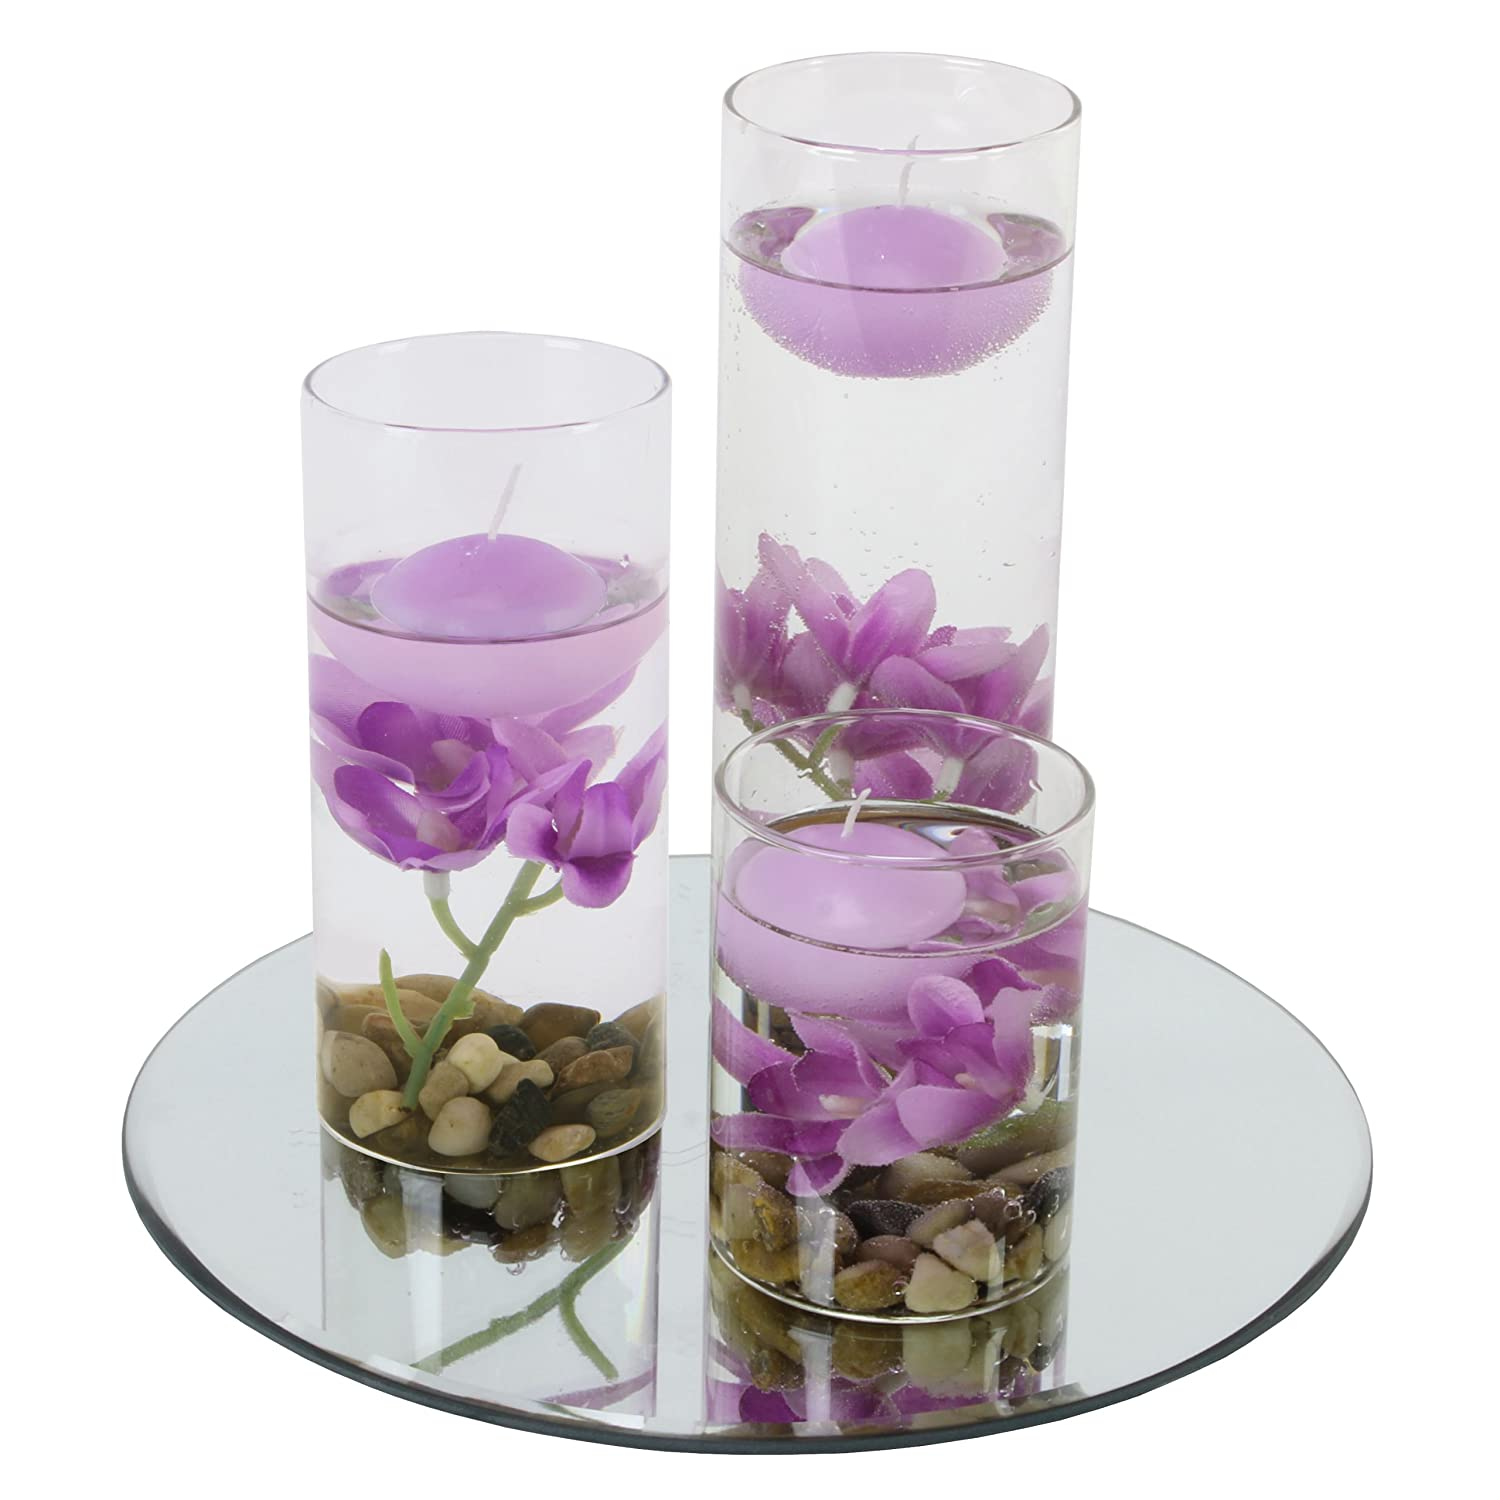 Set 3 floating candles round vase purple flowers mirror for How to make flowers float in vases